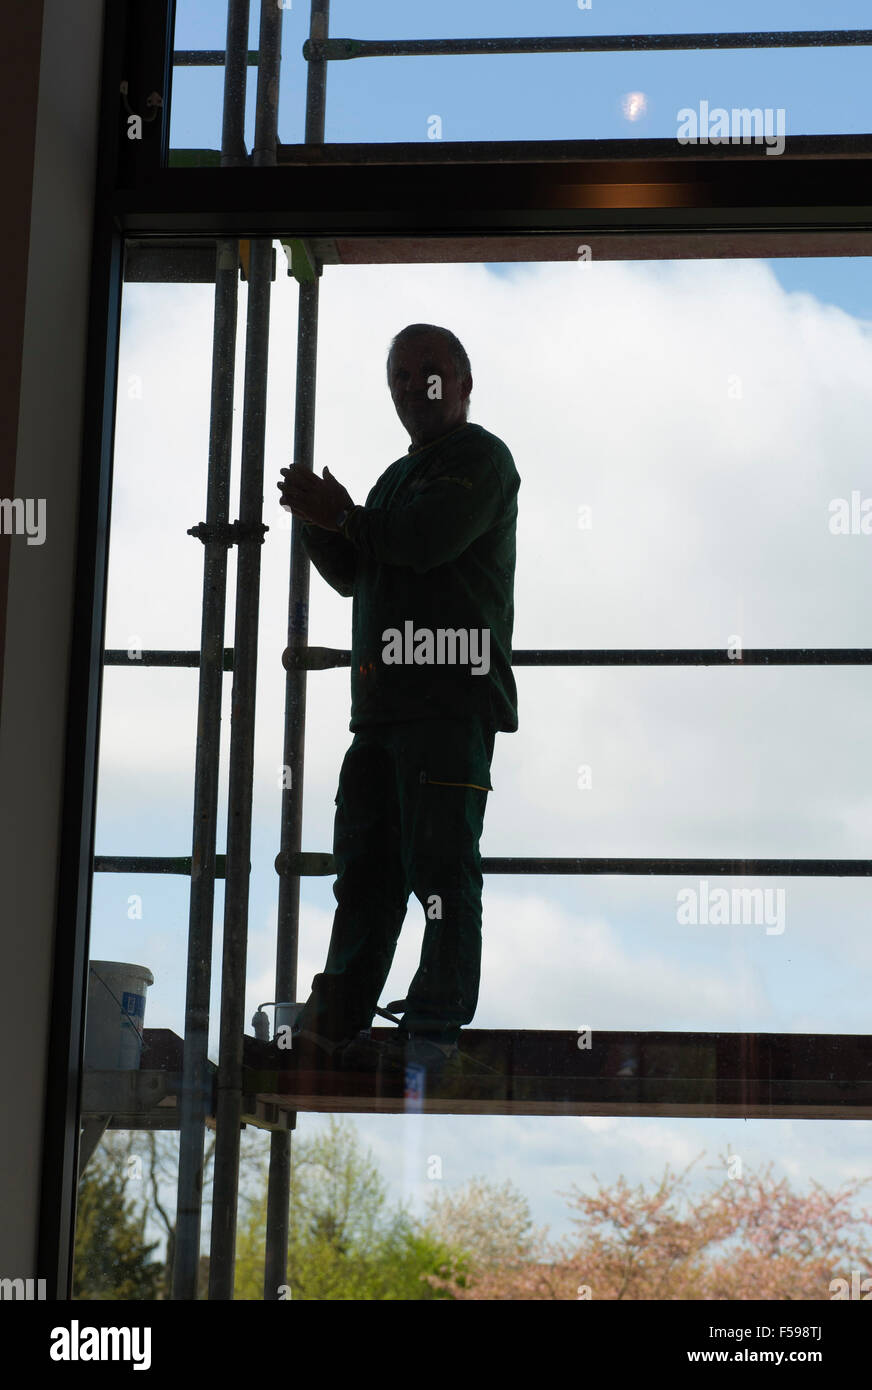 Worker on scaffolding - Stock Image